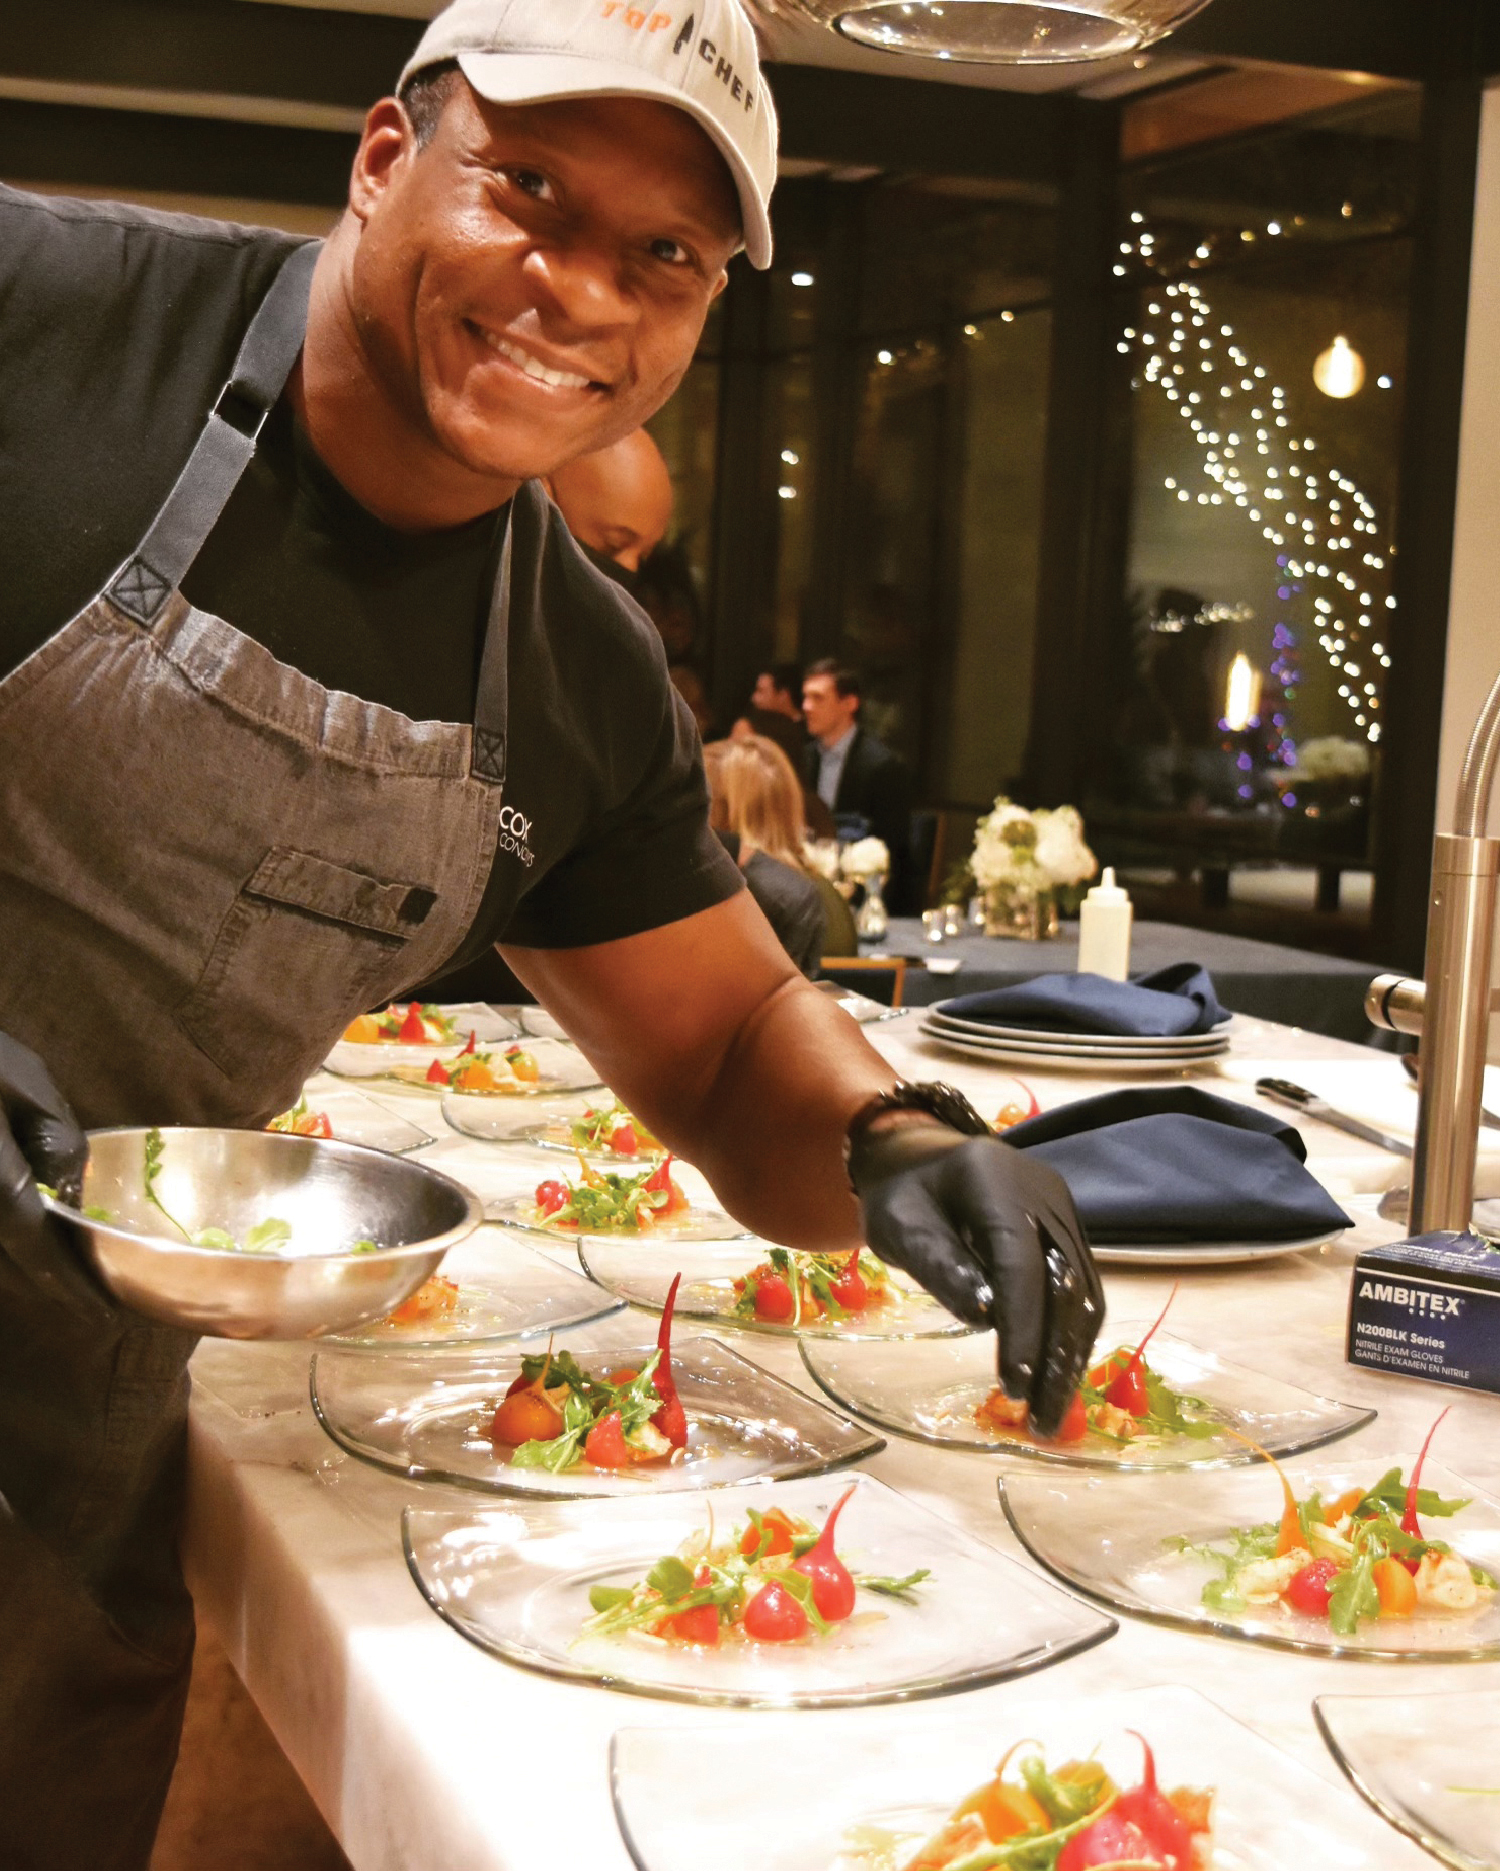 Edgemere Launches Culinary Partnership with Celebrity Chef